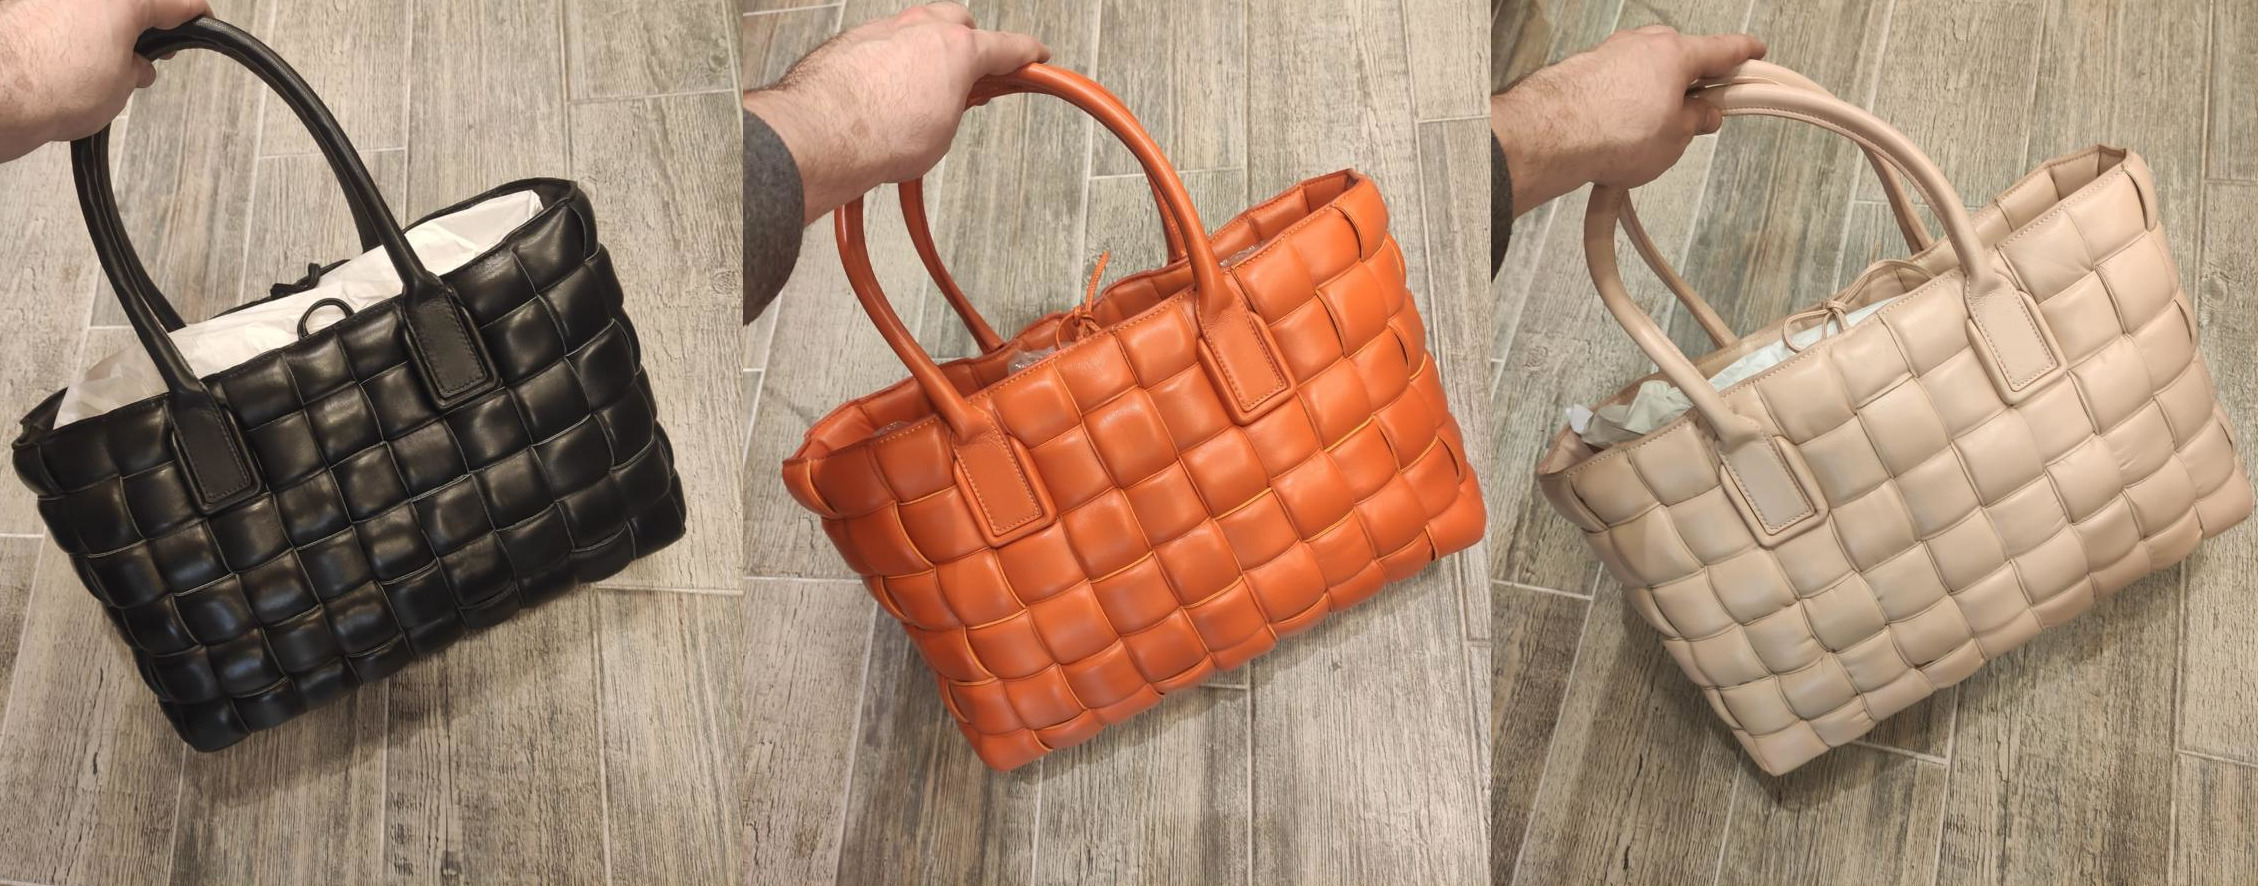 Bottega Veneta Large woven leather strip high fashion tote bags in a variety of colors.